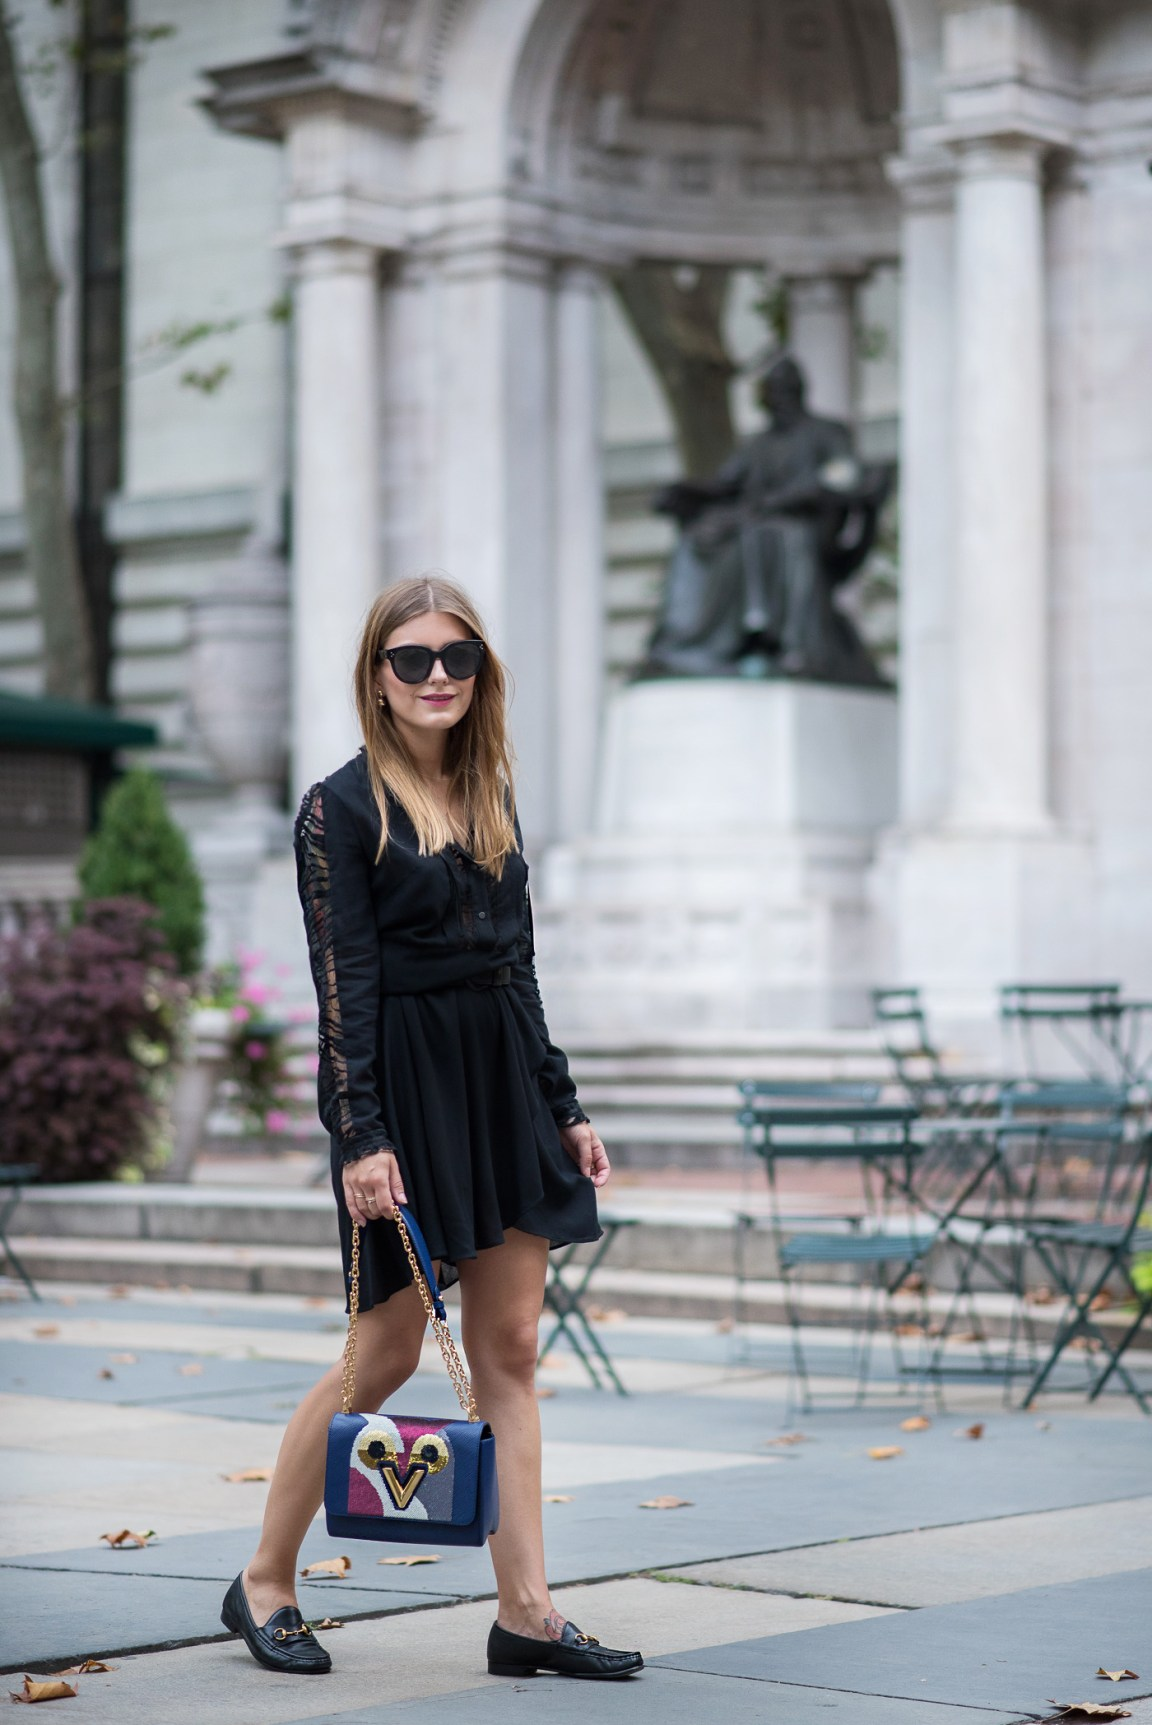 Little_Black_Dress_Lala_Berlin_Louis_Vuitton_Gucci_3